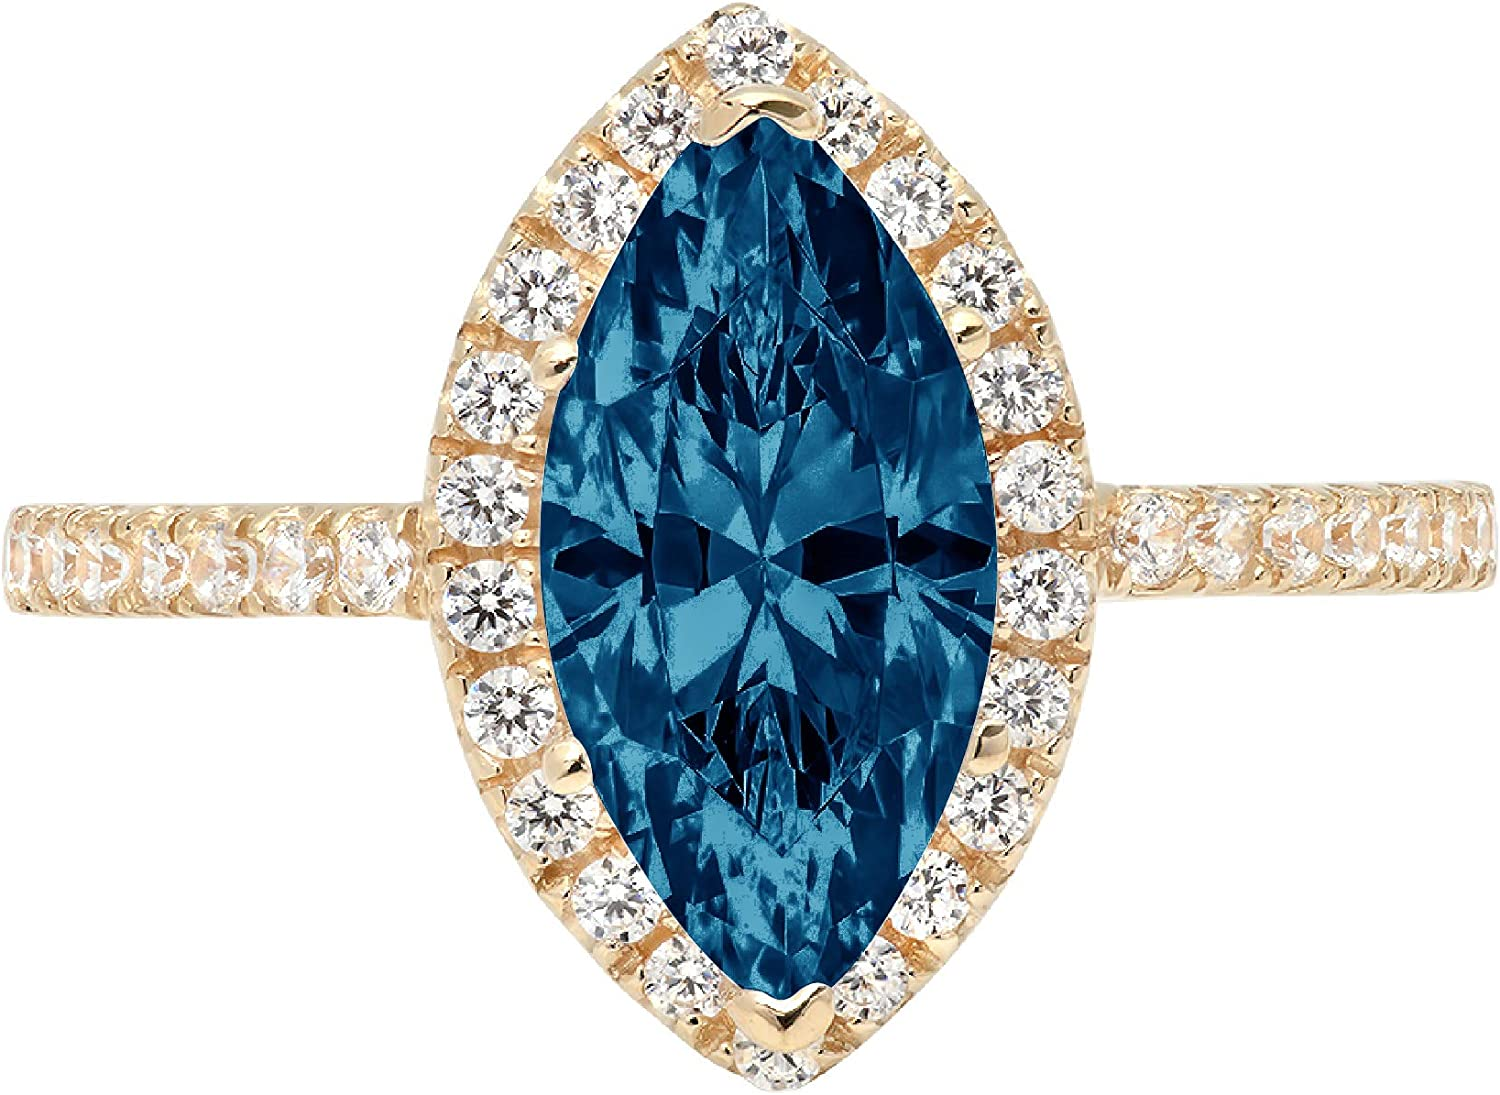 2.35ct Brilliant Marquise Cut Solitaire with Accent Halo Natural London Blue Topaz Gem Stone VVS1 Designer Modern Statement Ring Solid 14k Yellow Gold Clara Pucci